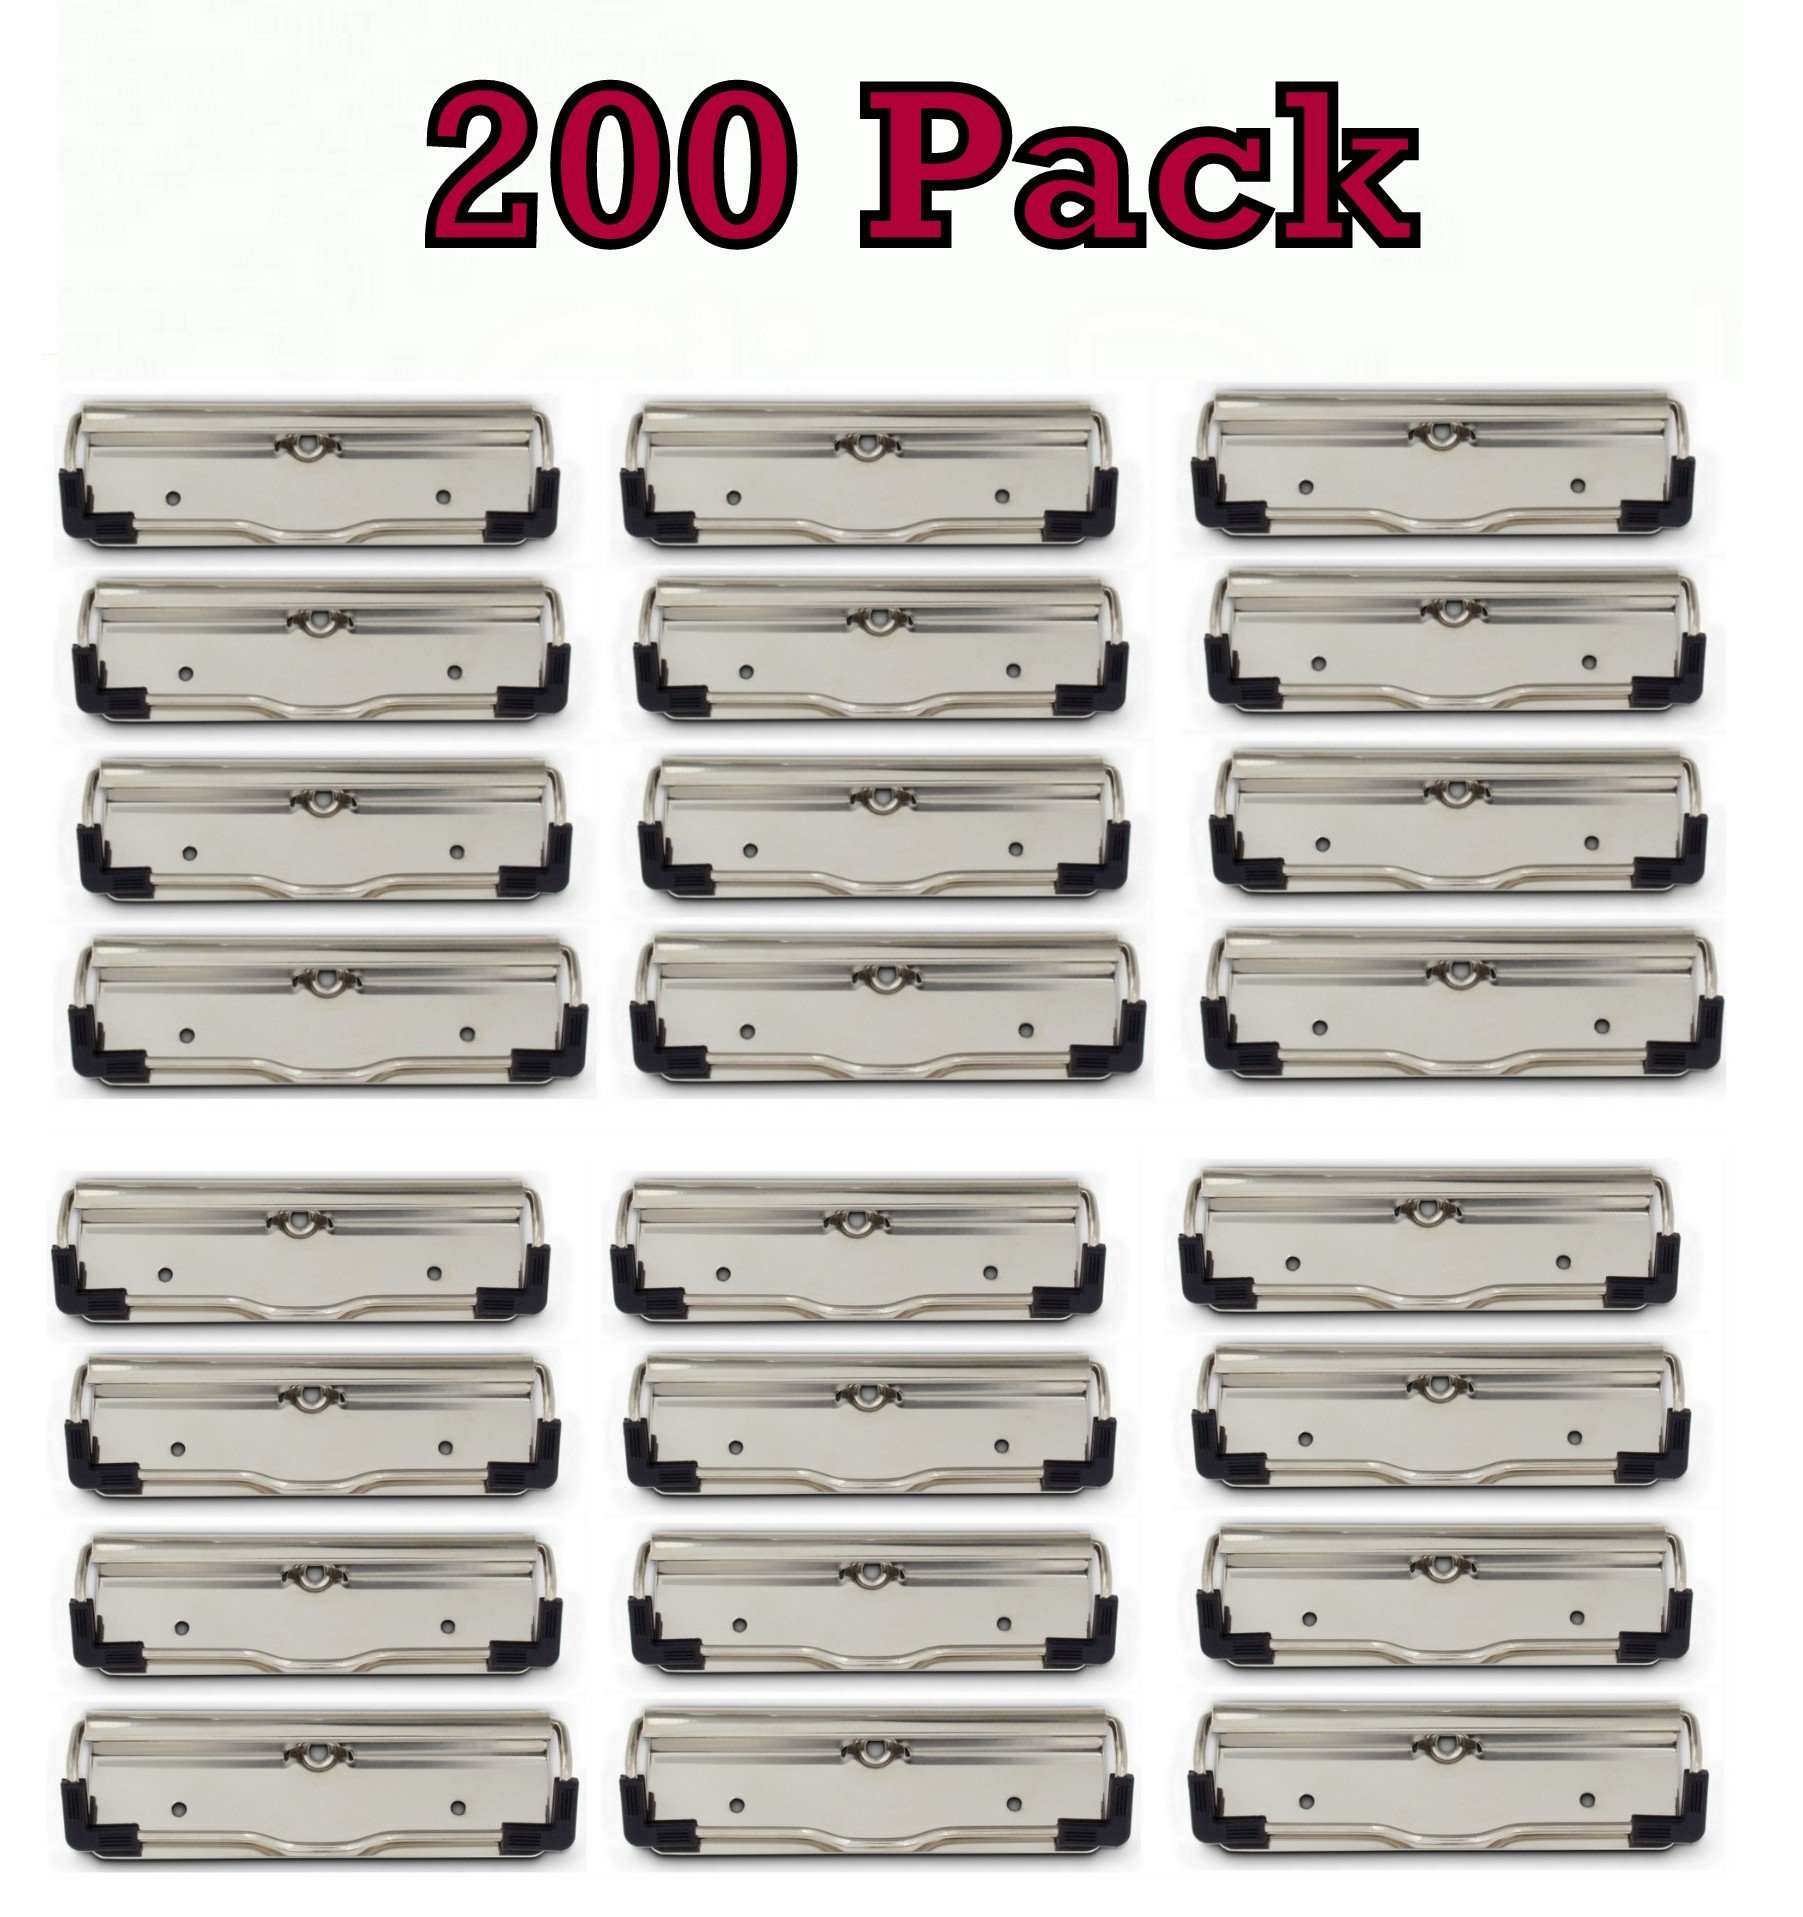 Bulk Pack of Low Profile Clipboard clips with Rubber Feet, holds half inch of paper , LPCx100 (200 Pack)